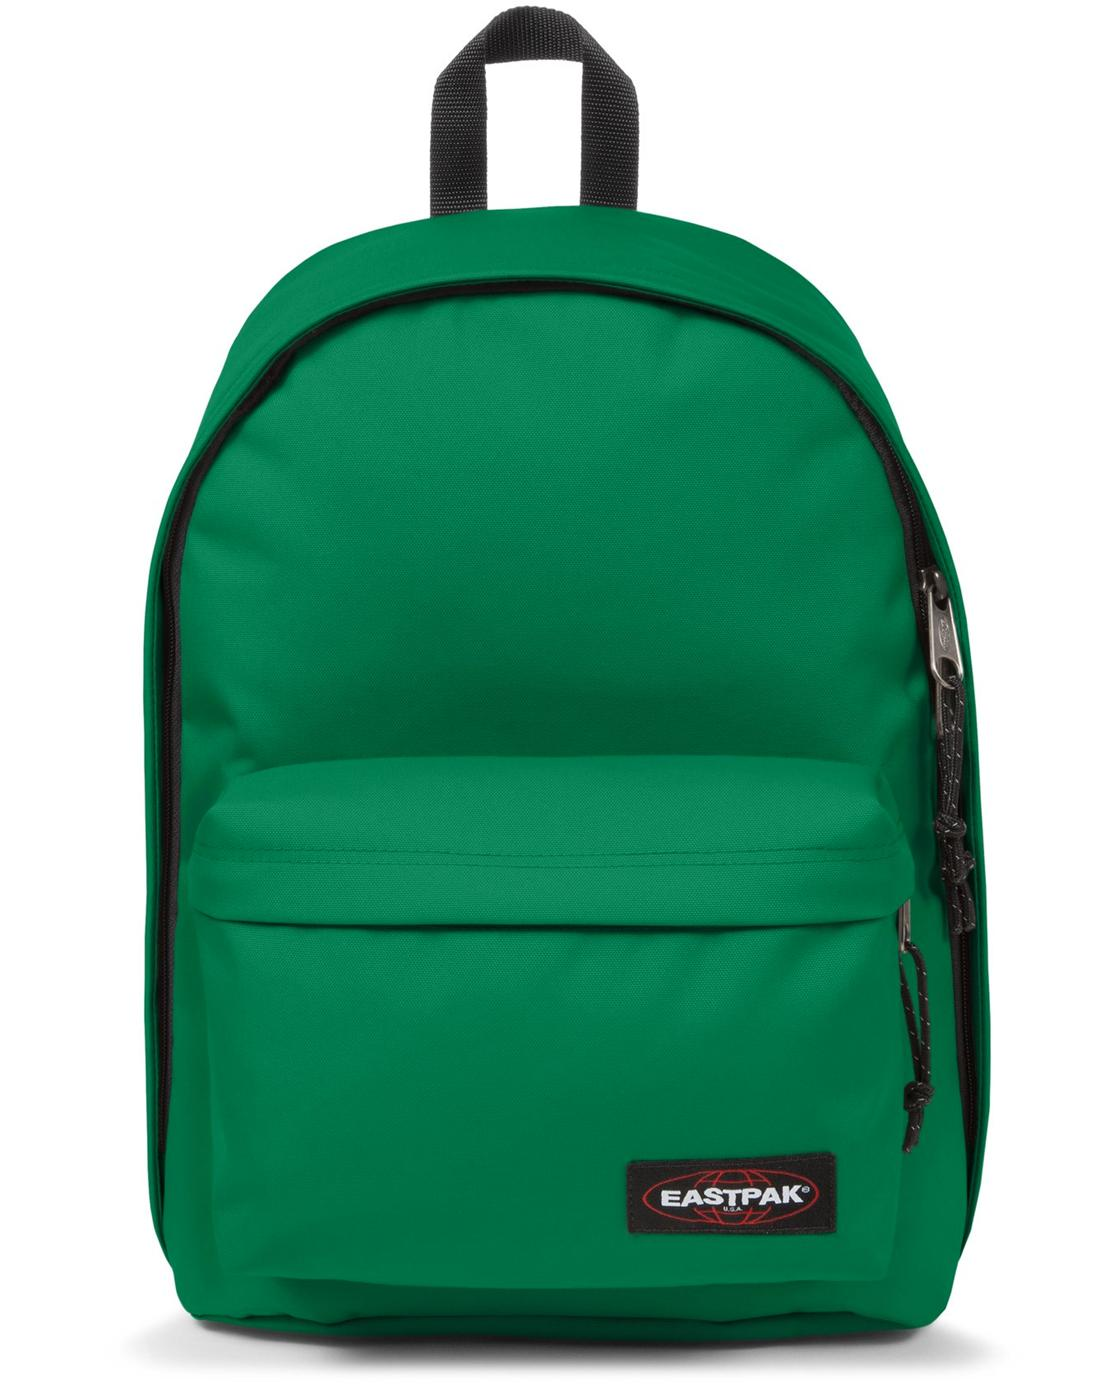 Out Of Office EASTPAK Parrot Green Laptop Backpack